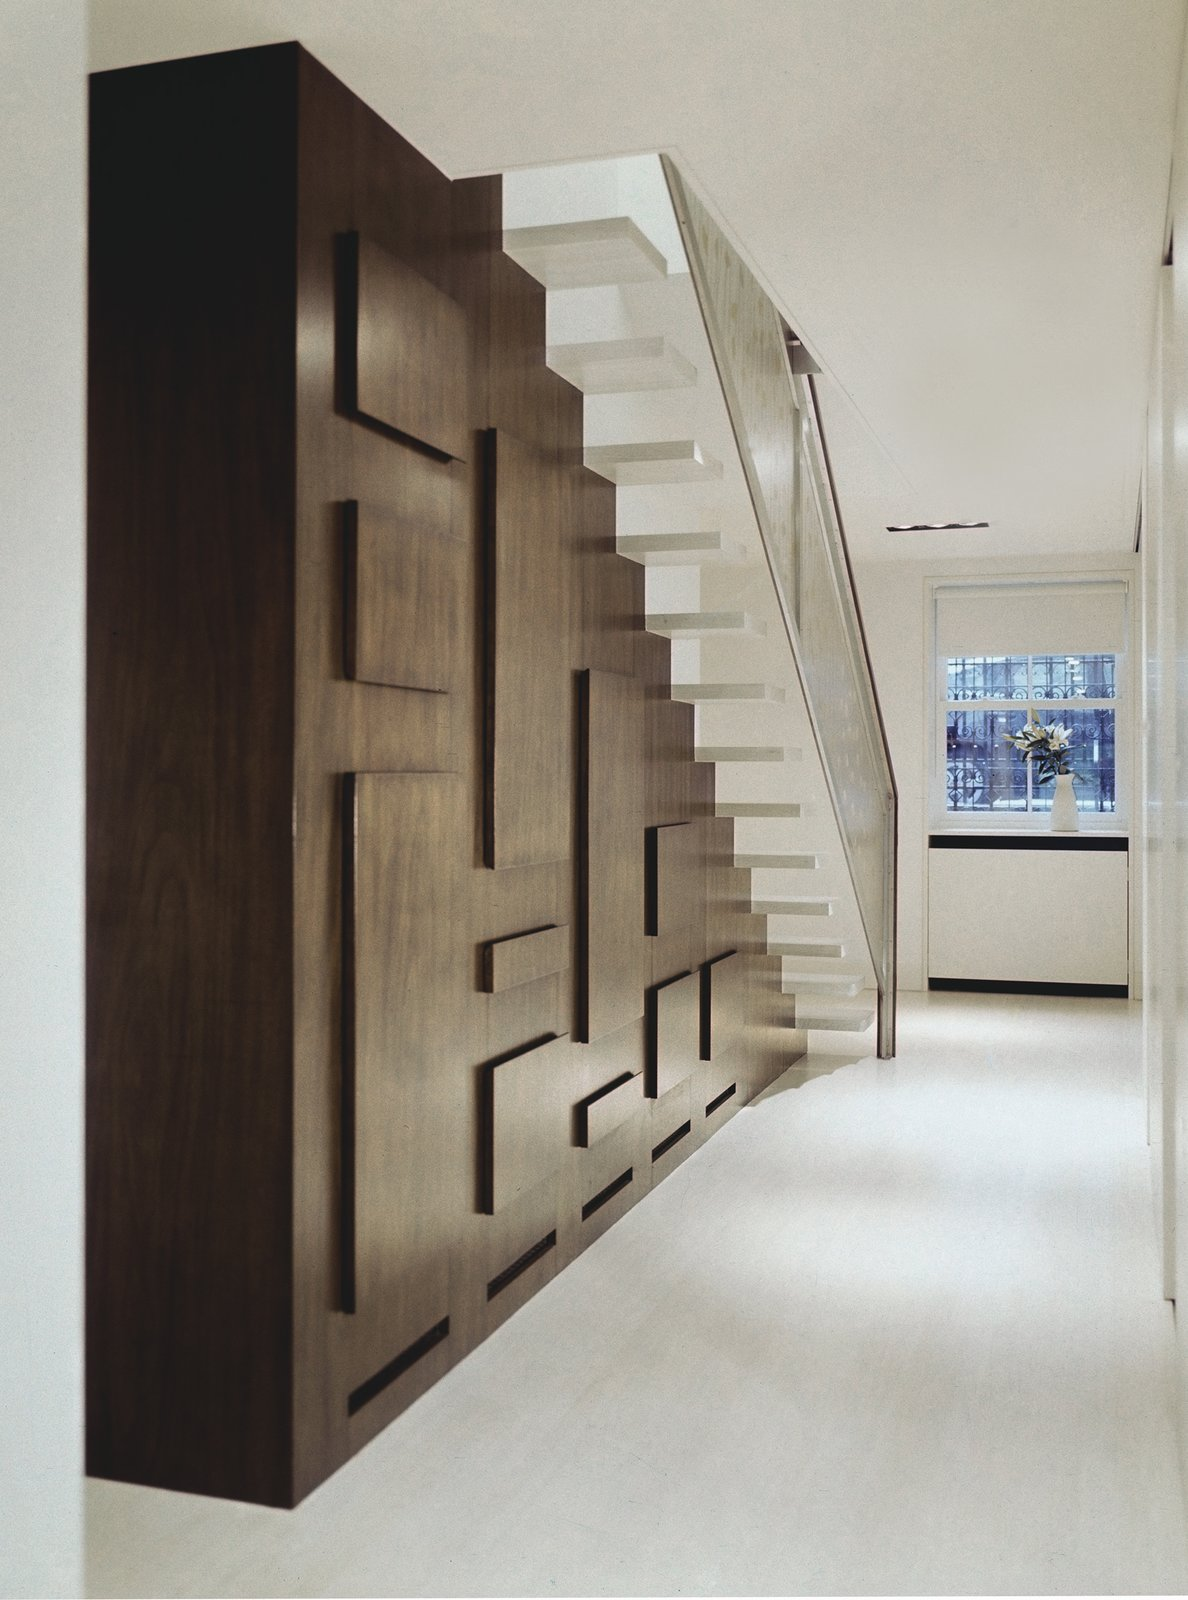 STAIR HALL  190+ Best Modern Staircase Ideas from Soho Row House Renovation